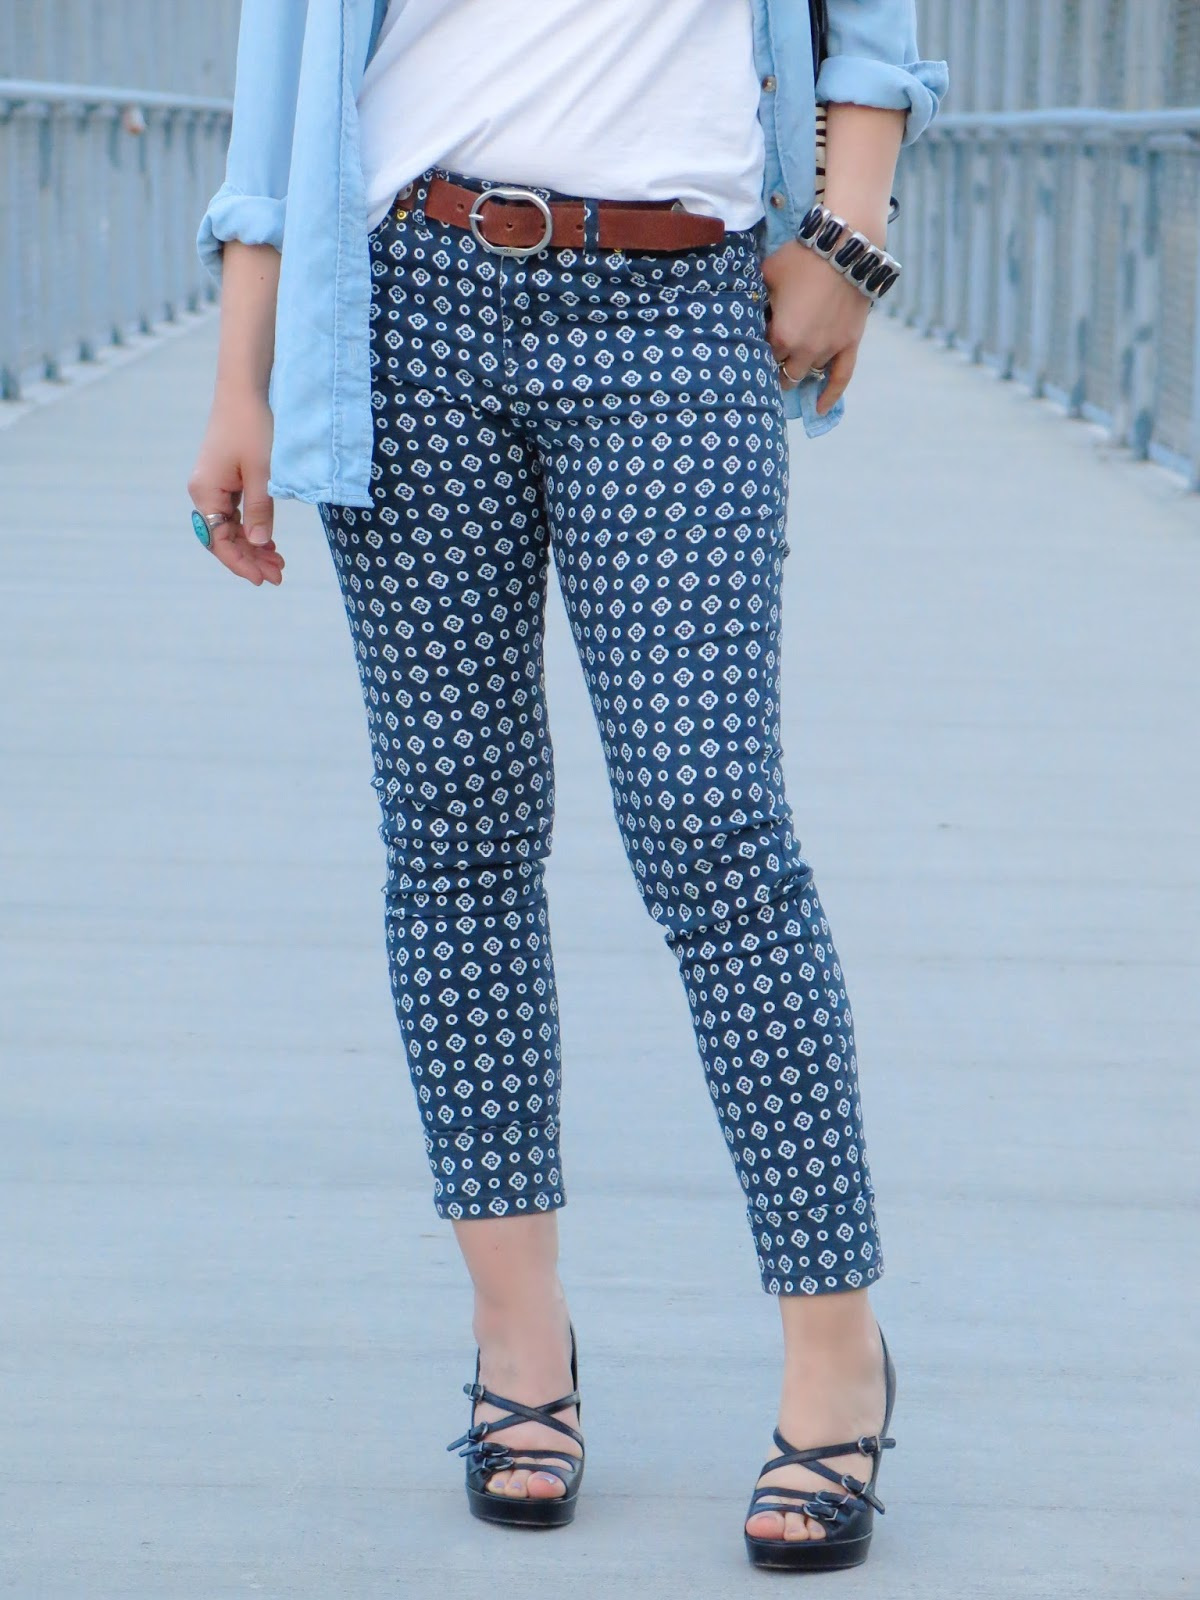 styling printed pants with a chambray shirt, strappy platform shoes, and a metal and leather bracelet